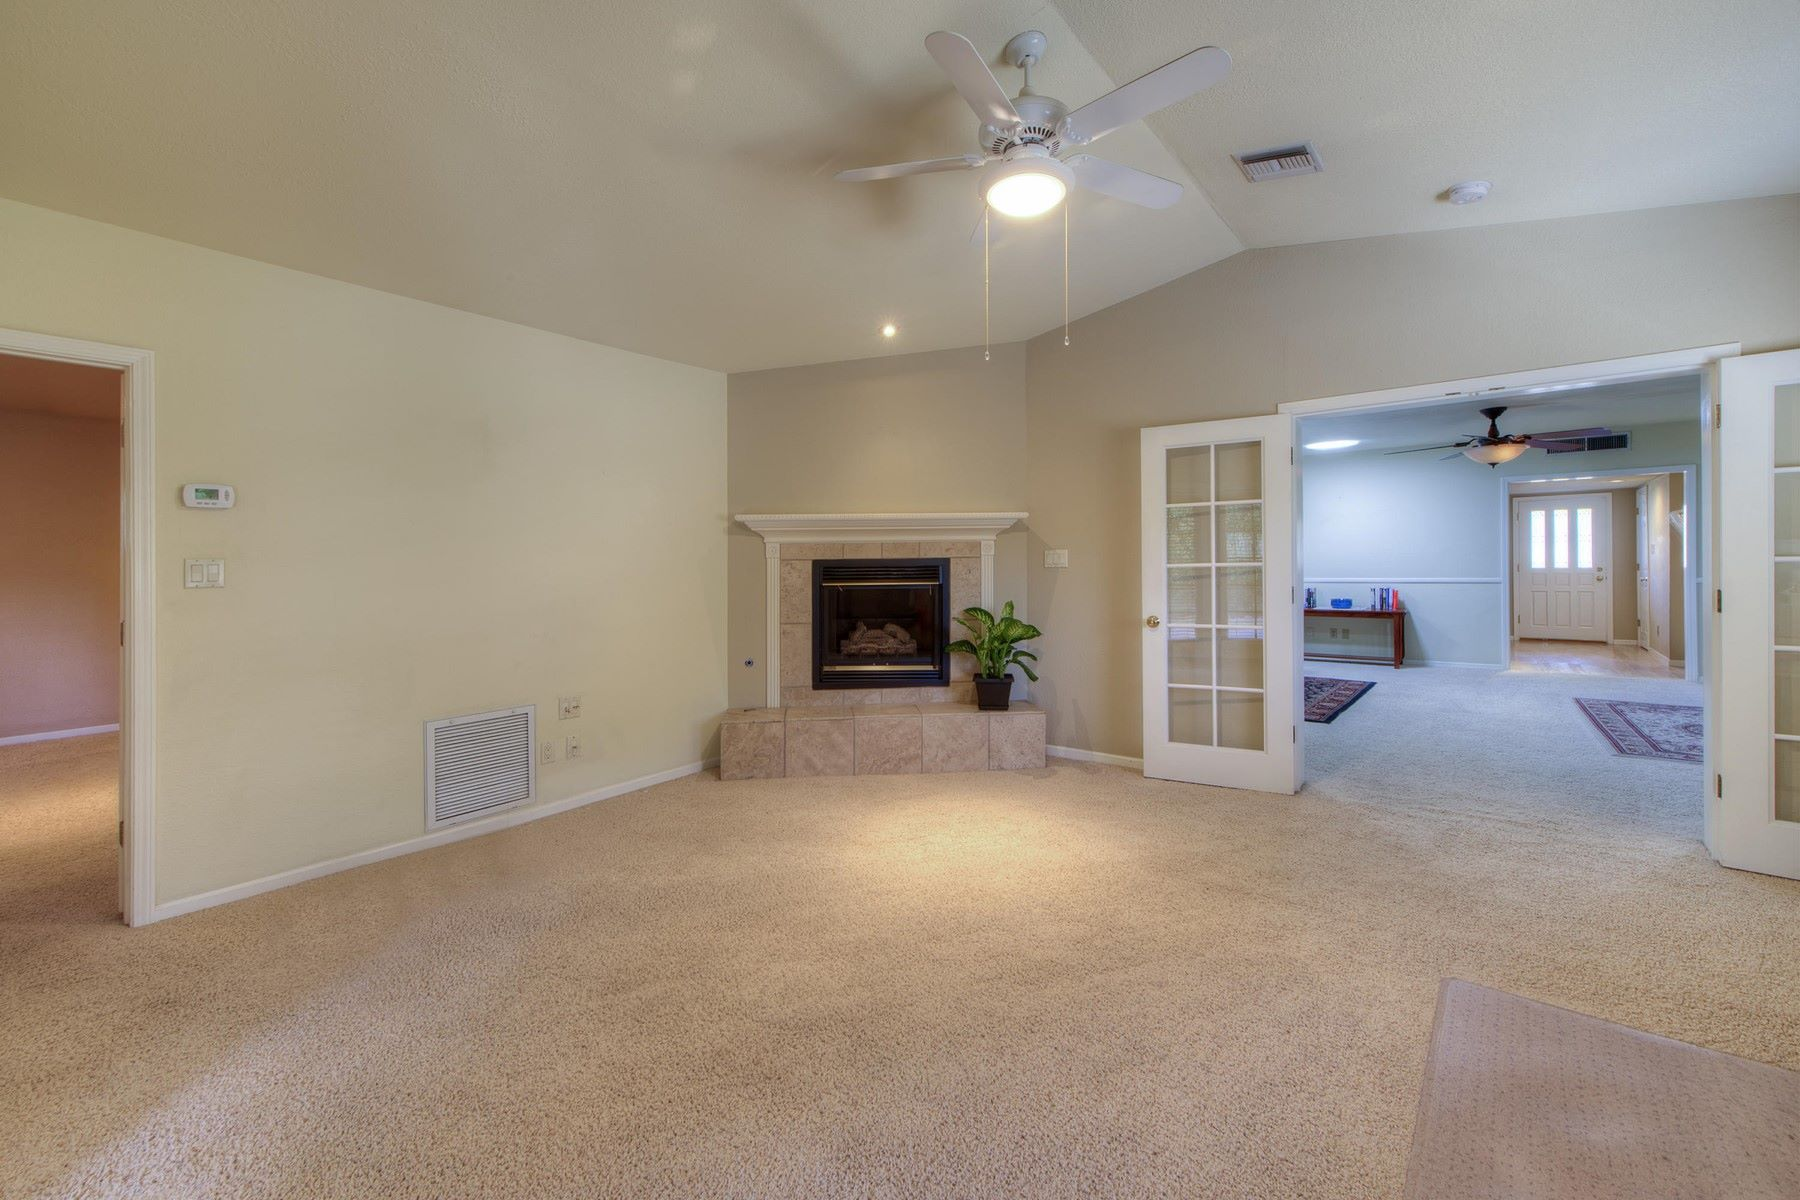 Villa per Vendita alle ore Beautifully remodeled home in Phoenix 1233 E Marshall Ave Phoenix, Arizona, 85014 Stati Uniti